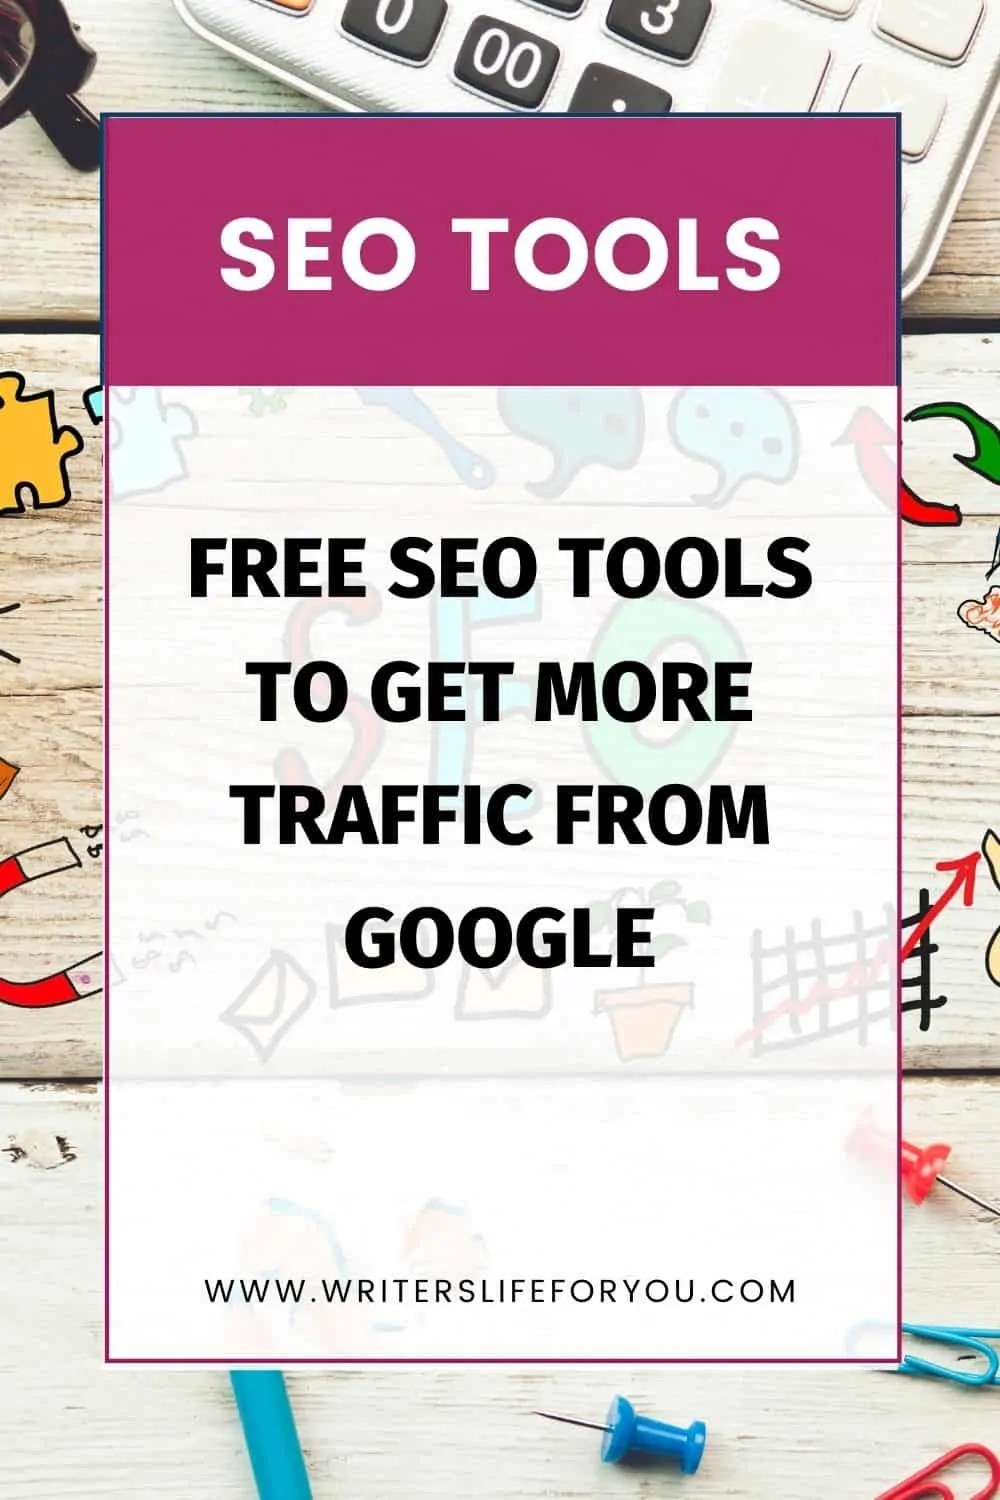 10 of the Best Free SEO Tools to Boost Your Search Engine Rankings